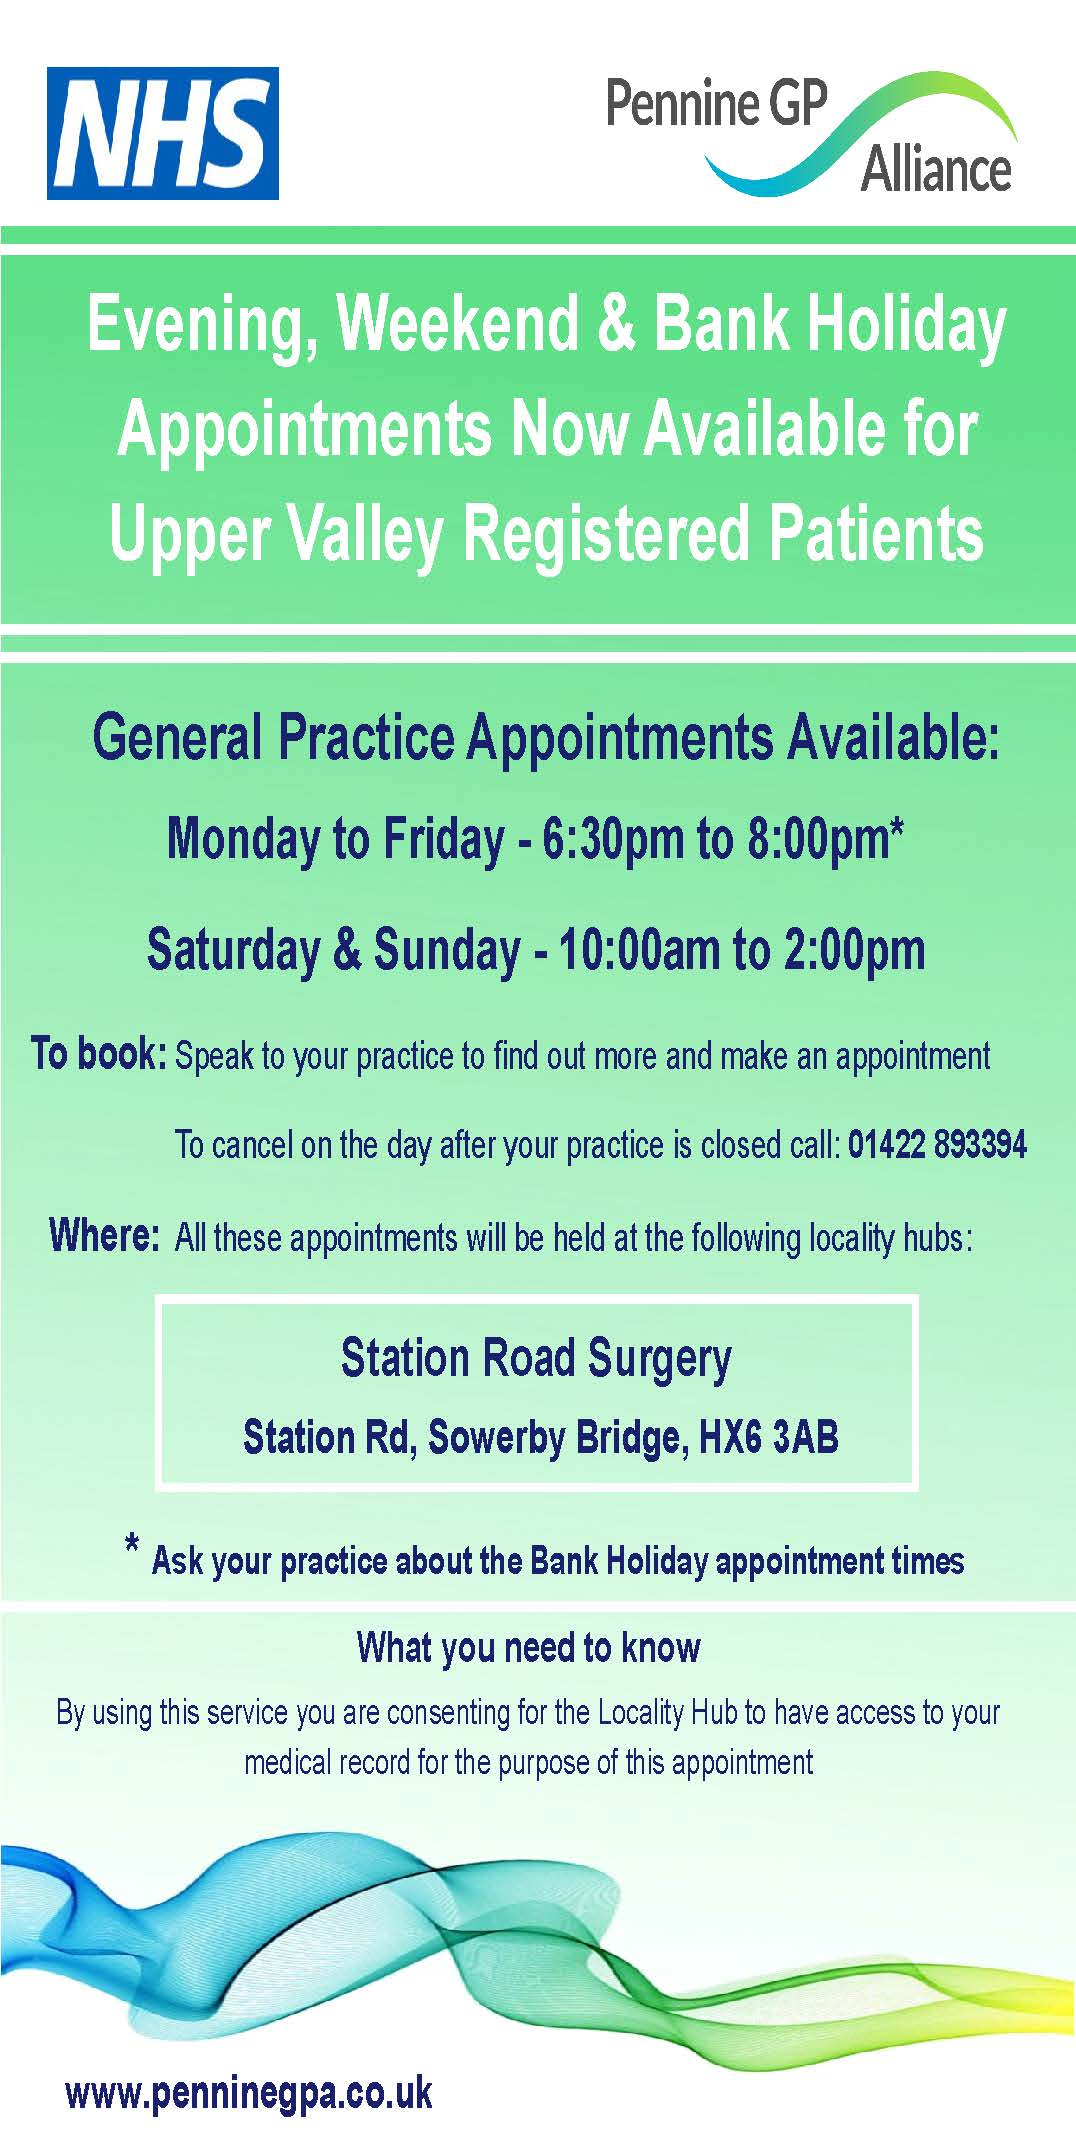 Improved Access for Upper Valley Registered Practices